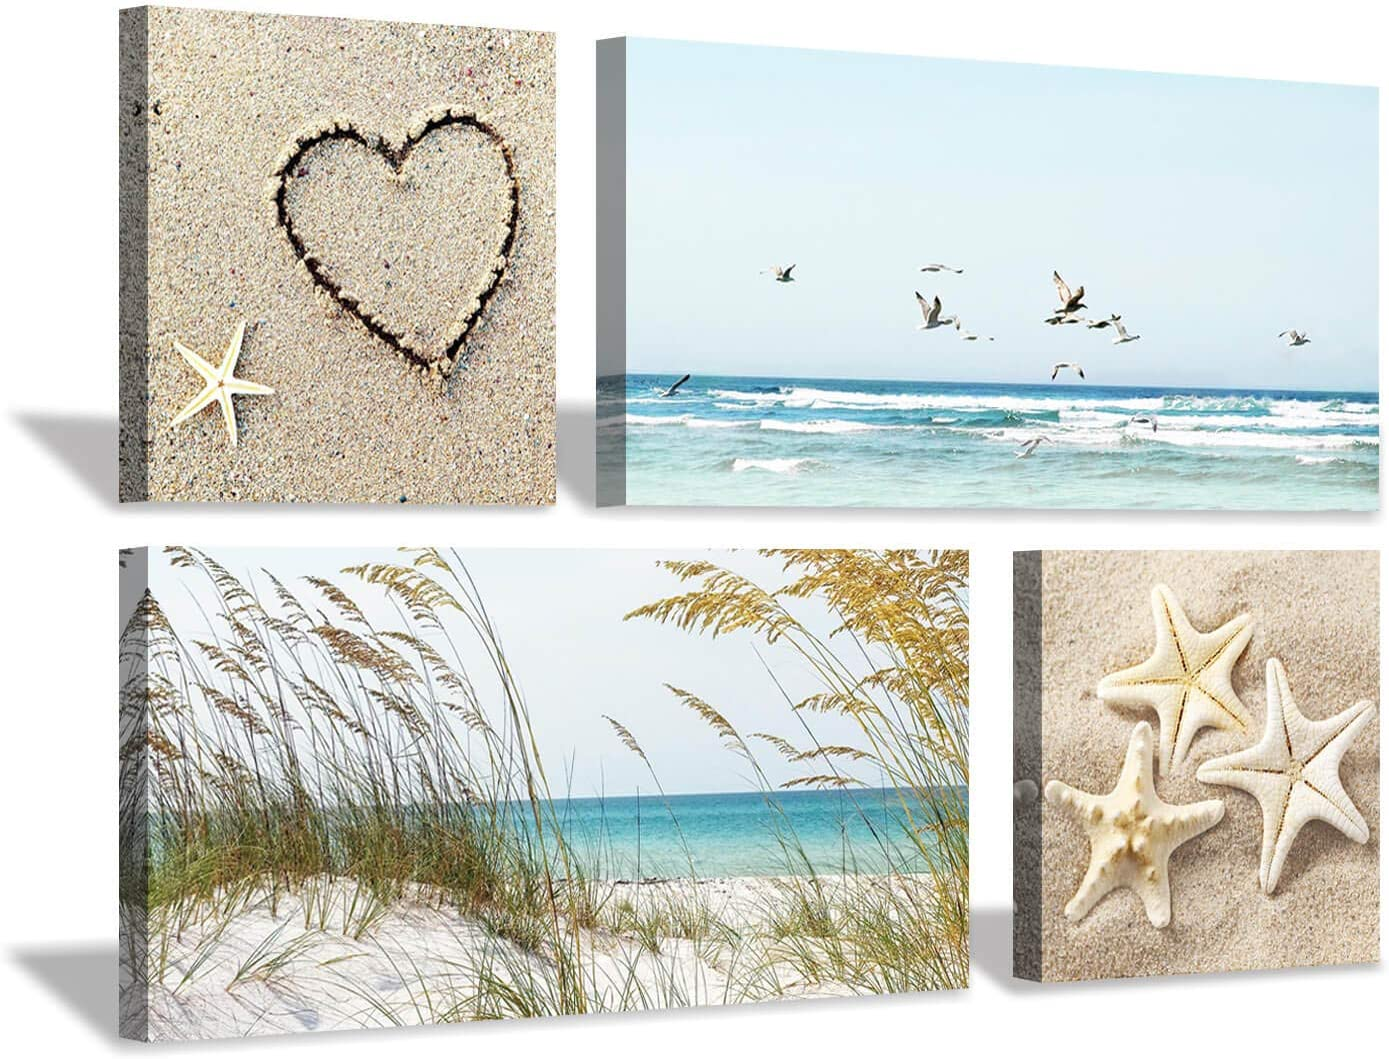 "Coastal Wall Art Seascape Artwork: Sea Grass and Starfish on Beach Canvas Painting for Living Room (12"" x 12'' x 2 Panels + 24"" x 12"" x 2 Panels)"